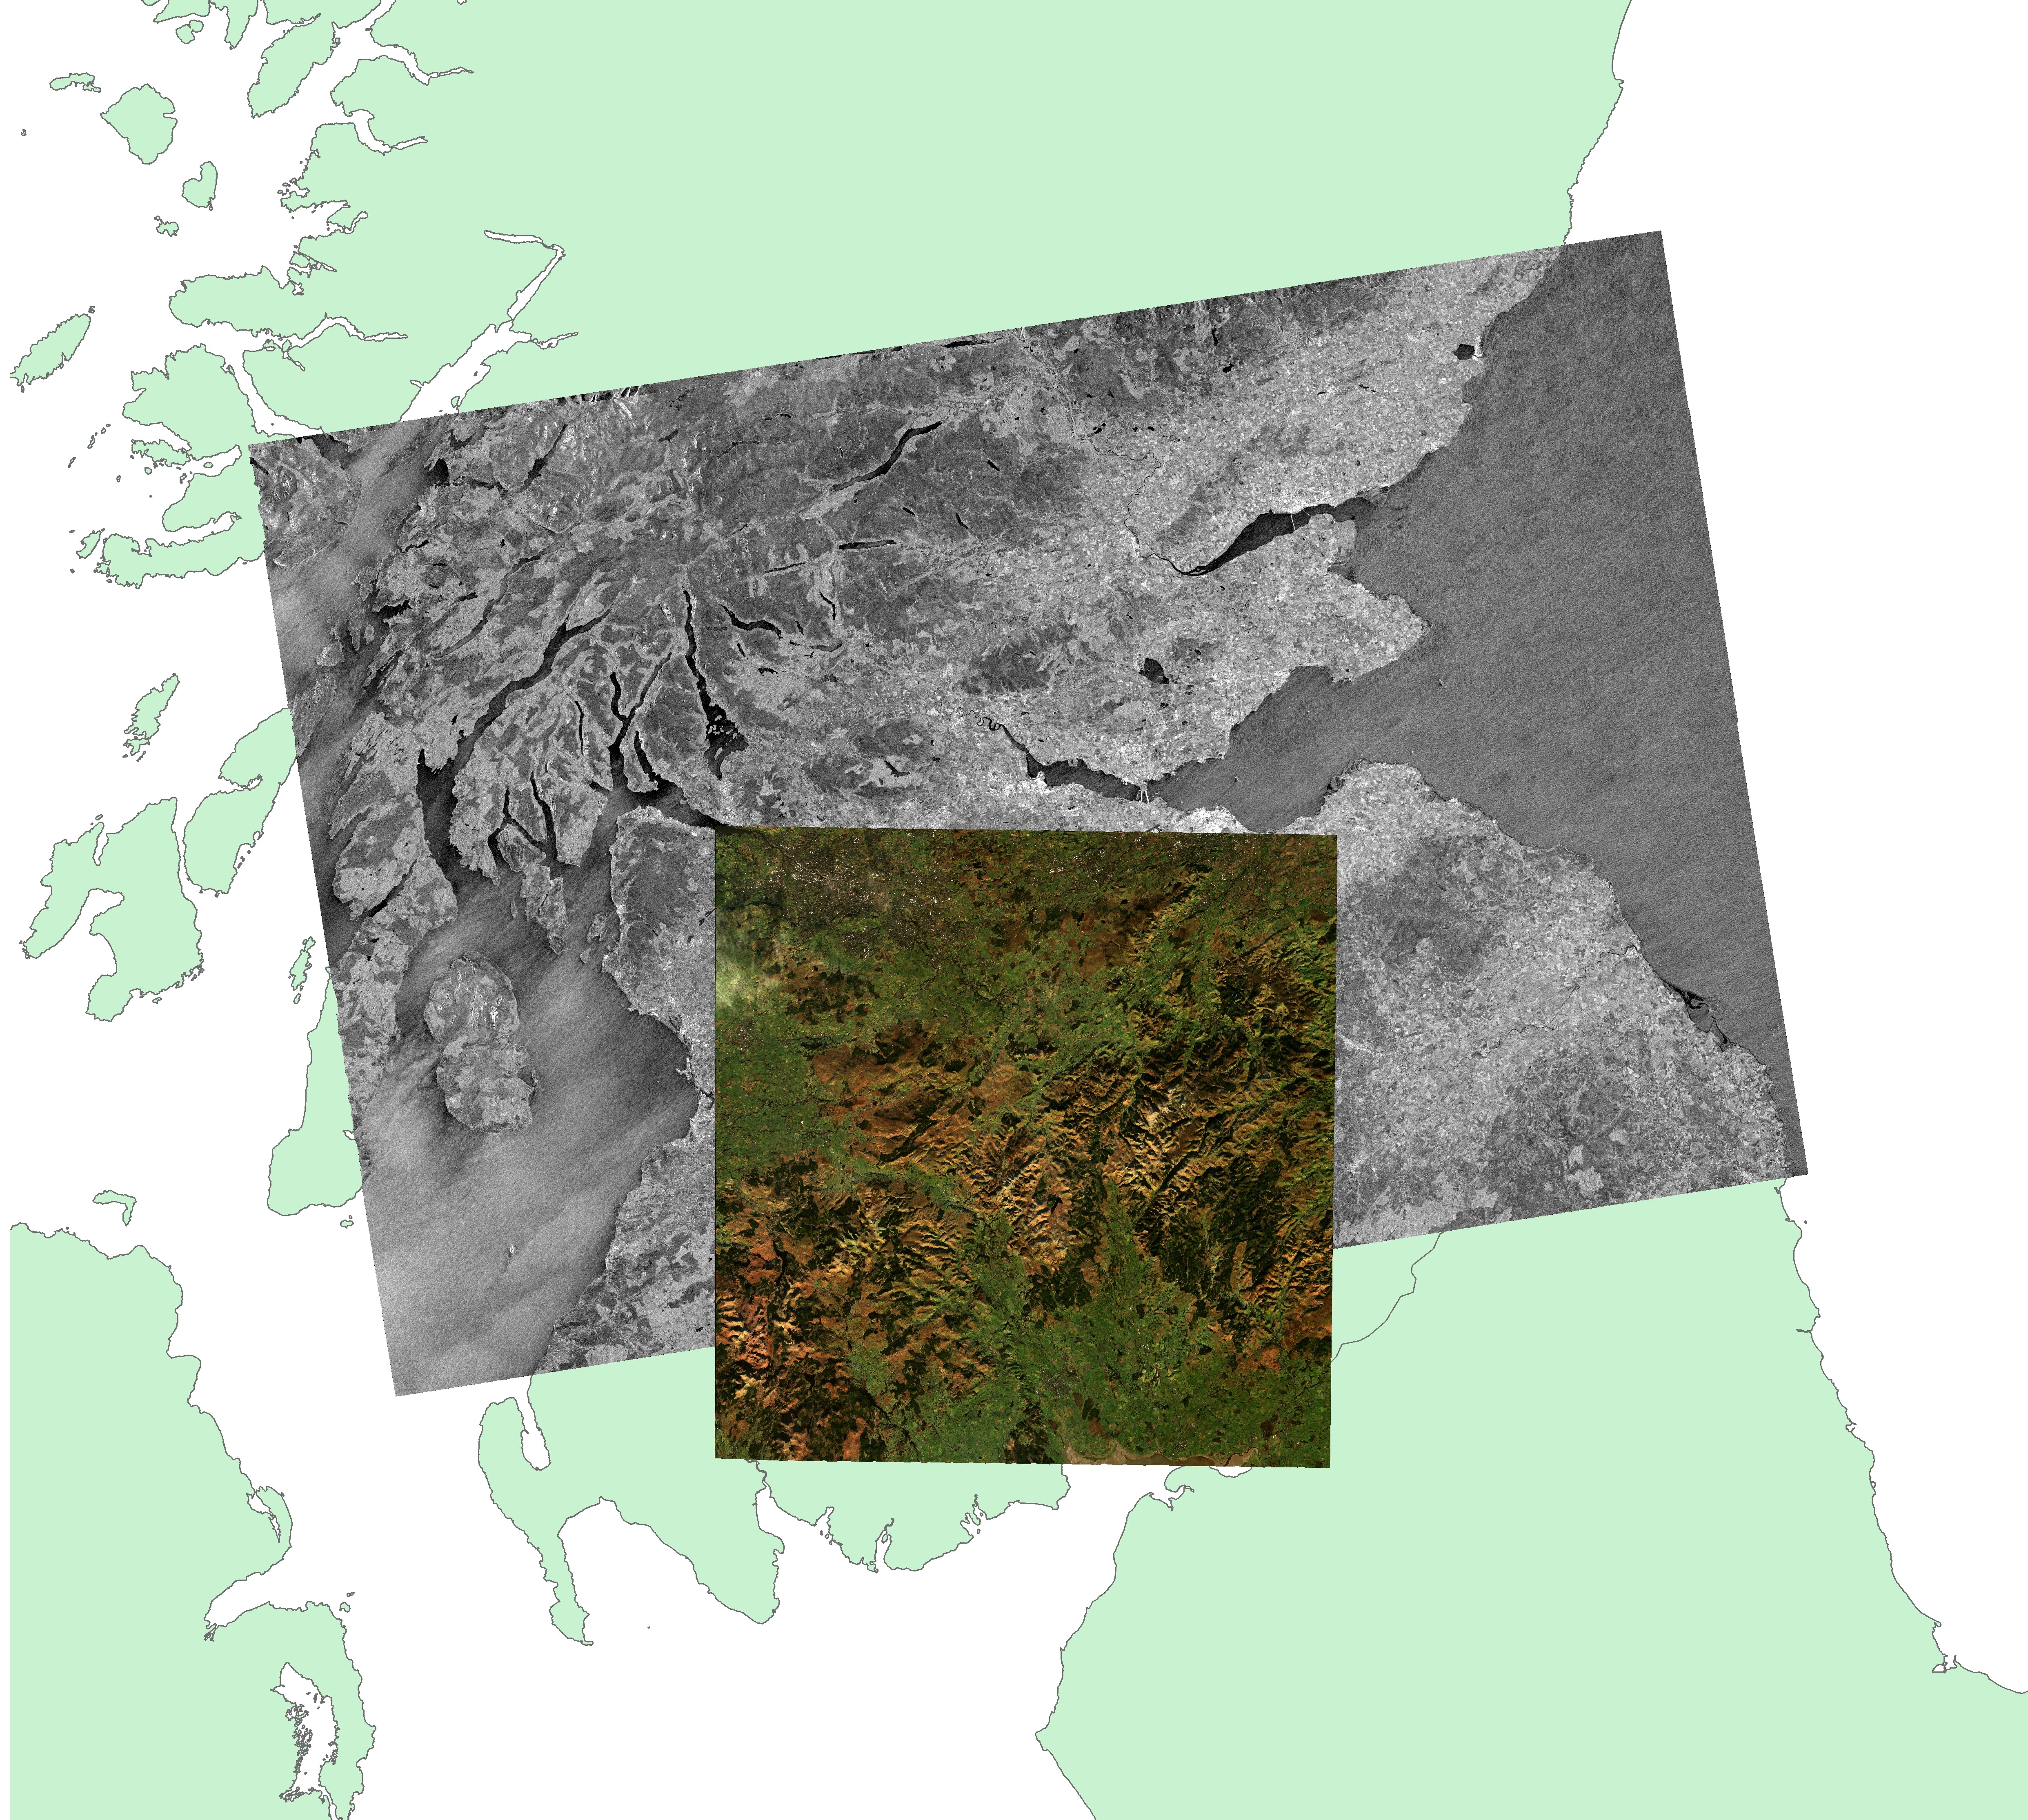 Sentinel-1 and Sentinel-2 data over a base map of Scotland